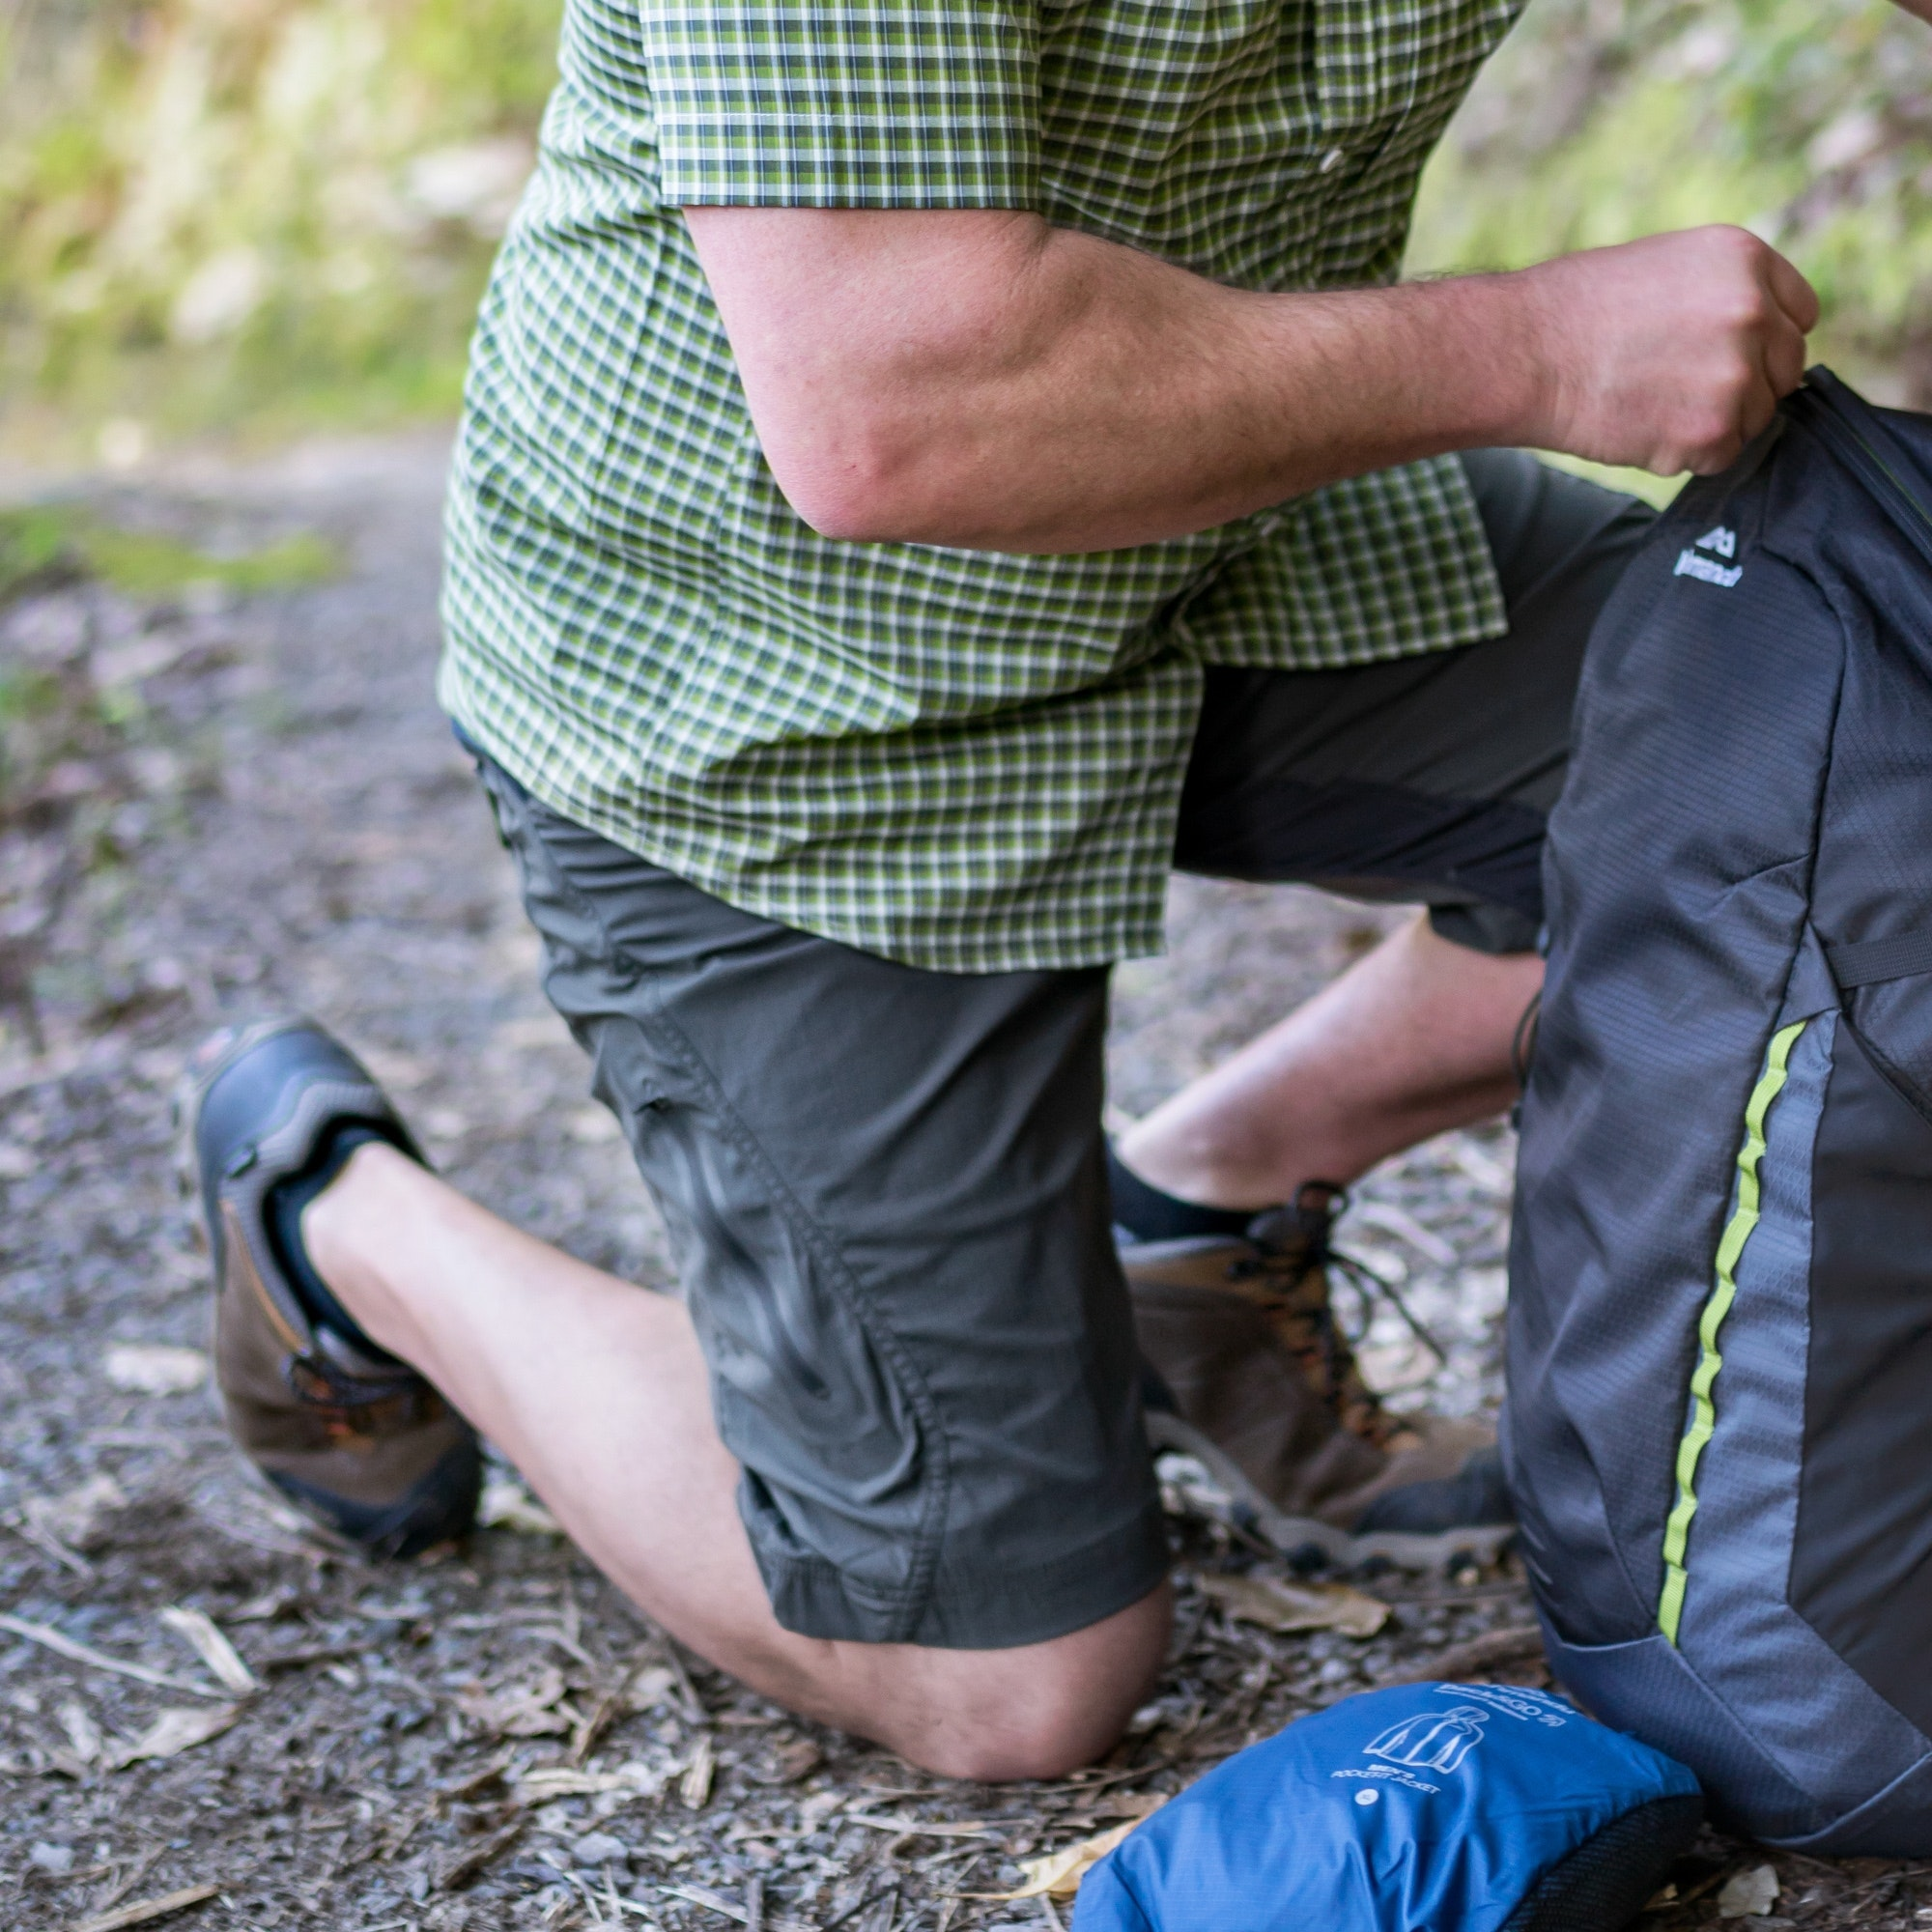 thumbnail 21 - NEW-Kathmandu-Aklo-Men-039-s-Walking-Hiking-Travel-Shorts-Pants-UPF-50-Protection